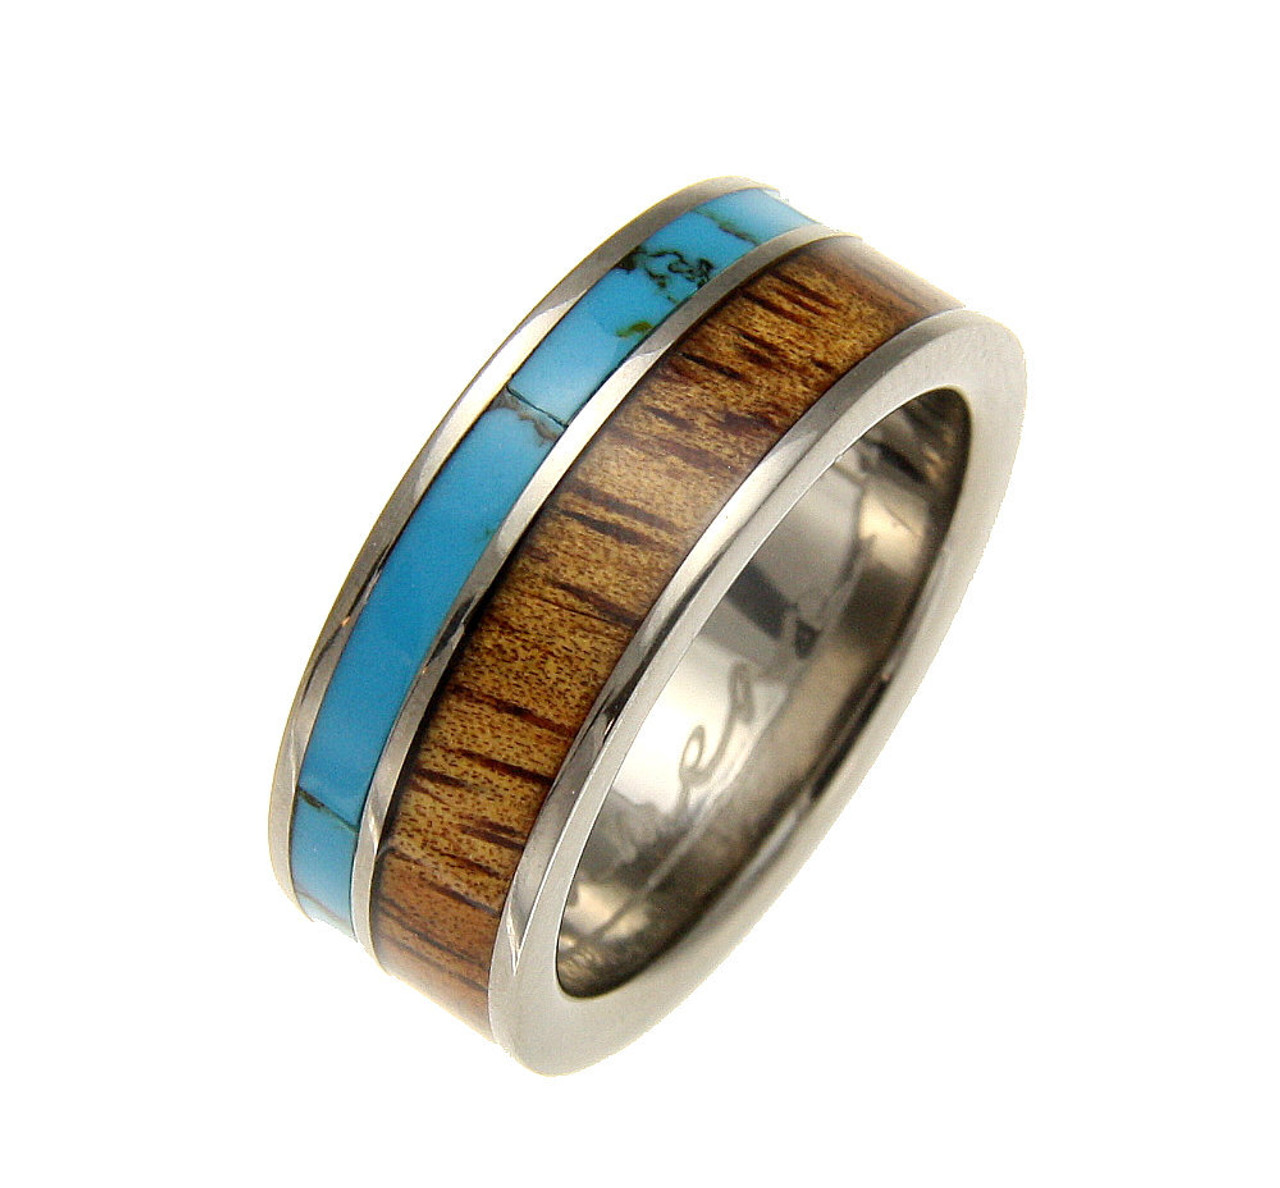 polished fiber wedding made beveled mens with rings titanium inlay bands all black band ring men out carbon tungsten or edges of products